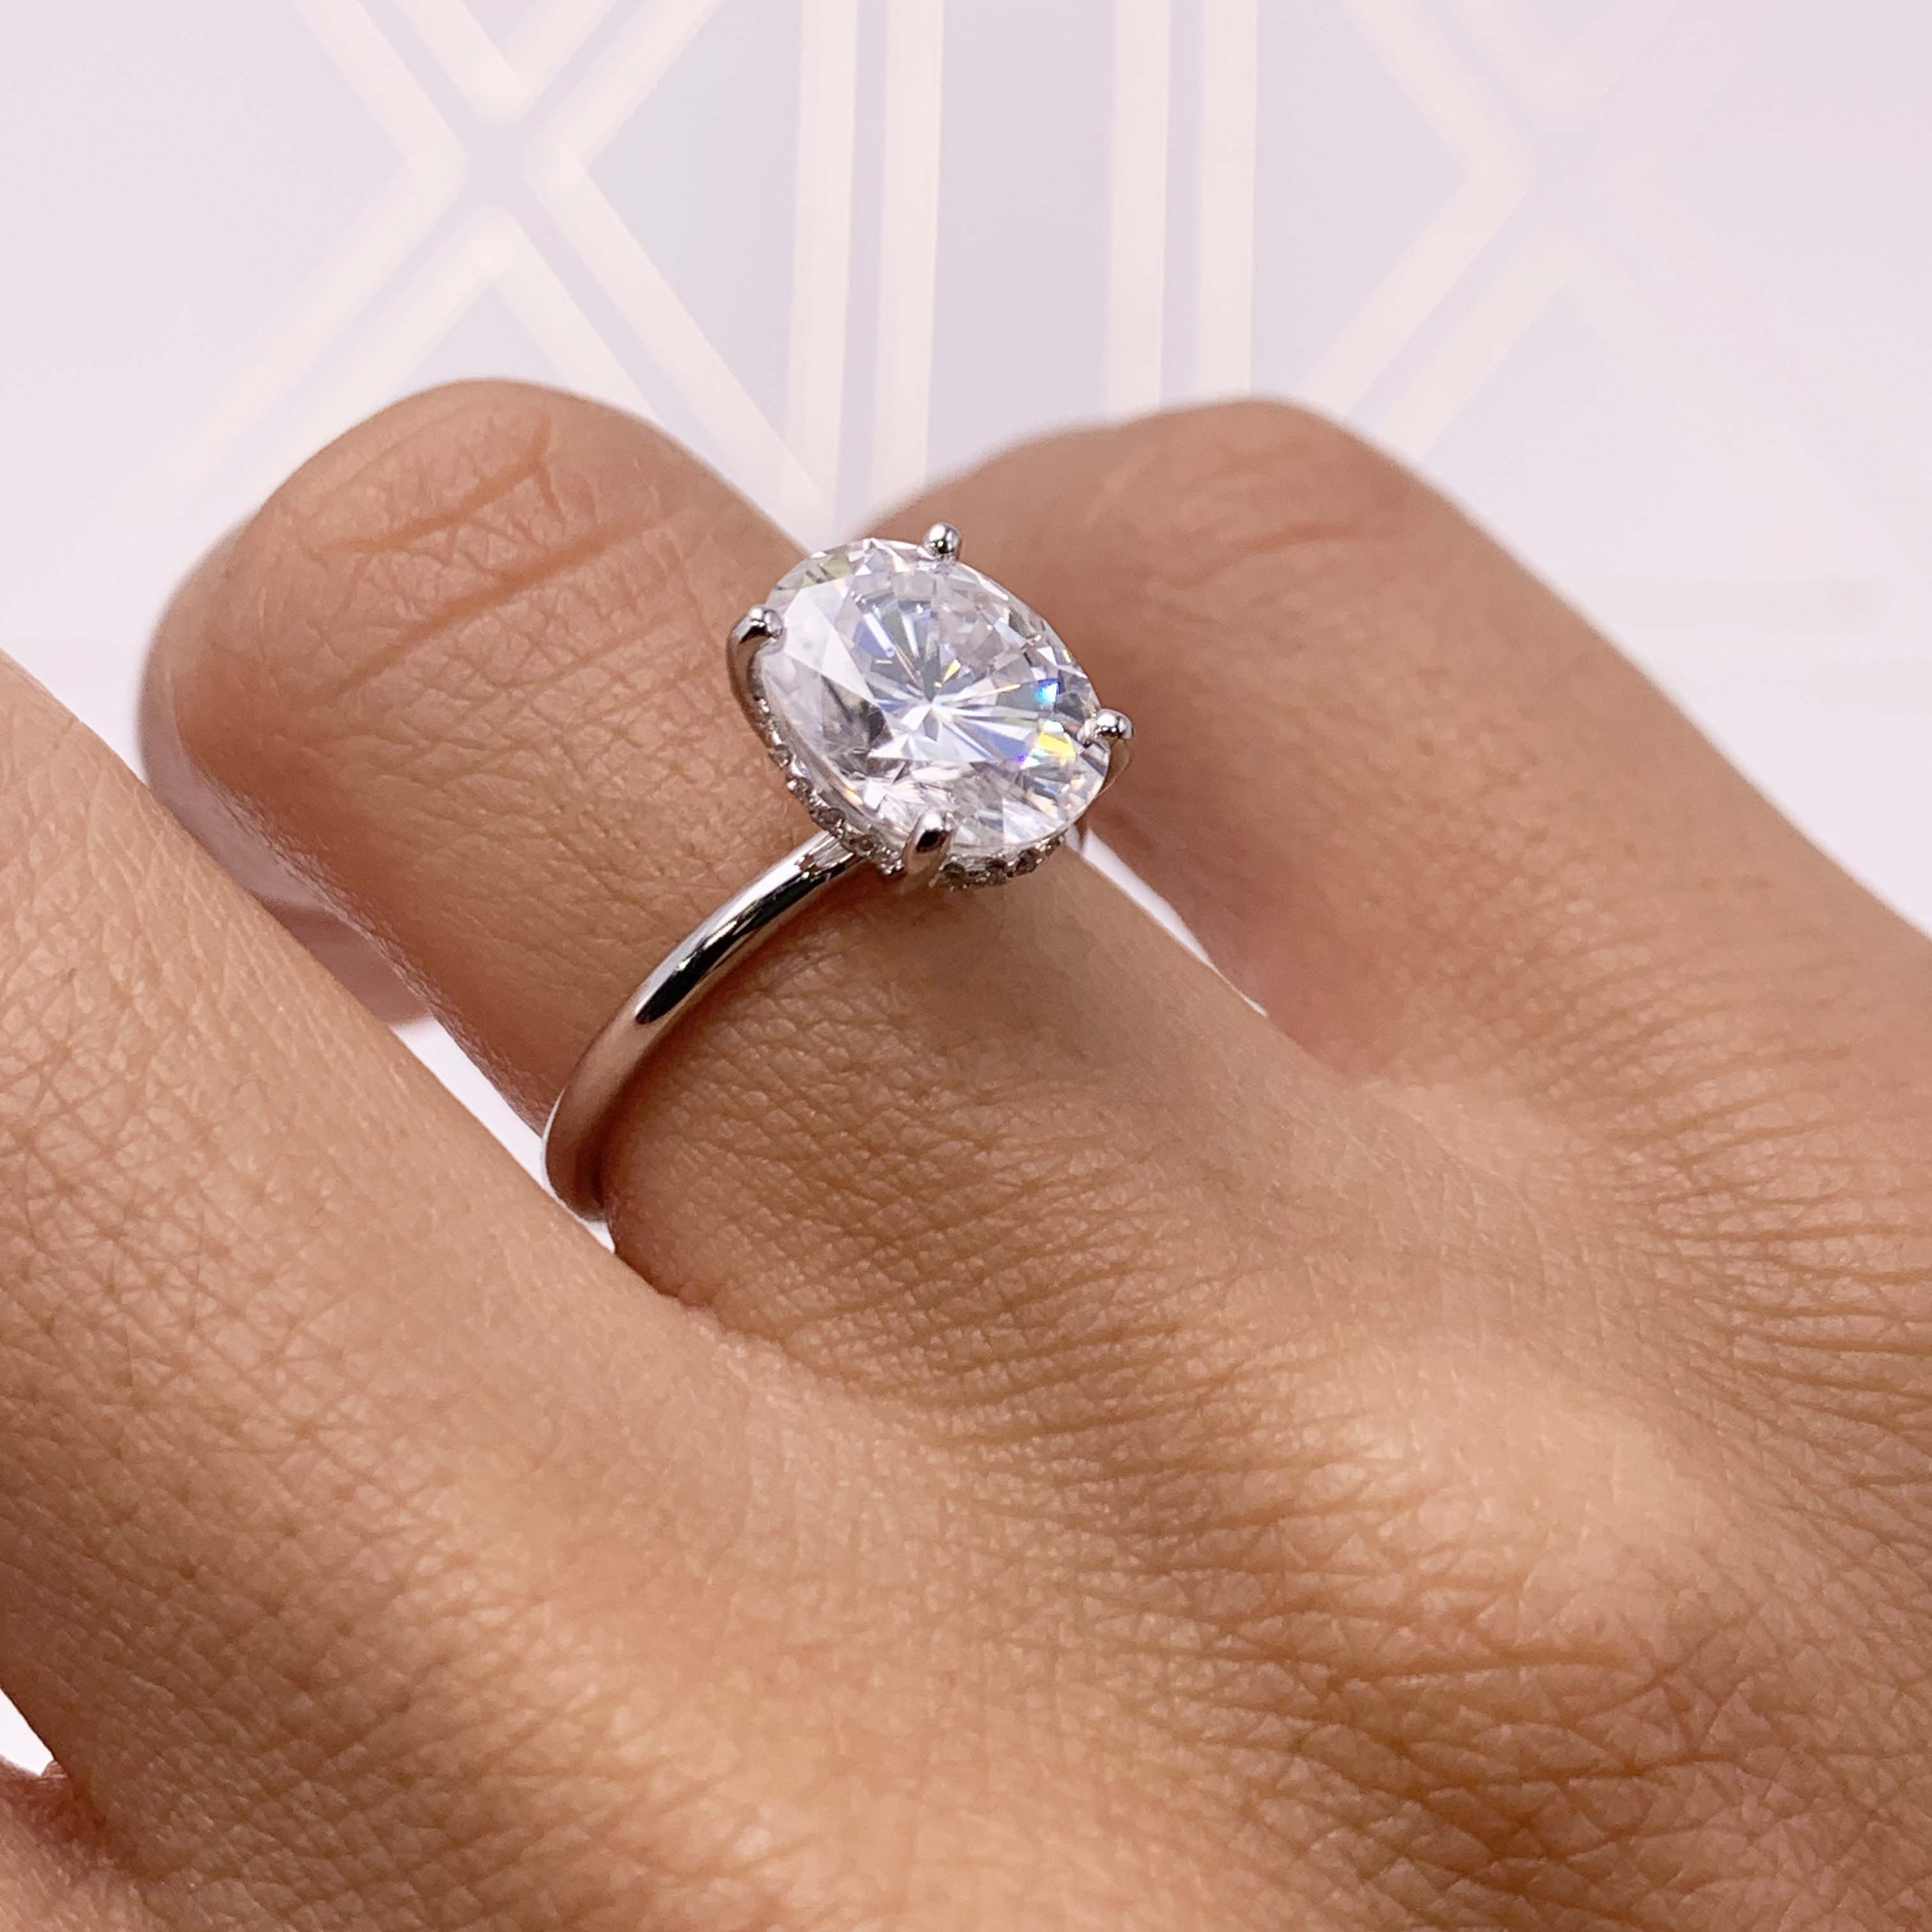 Willow Moissanite & Diamonds Ring - 3.1 CARAT OVAL SHAPED ULTRA-THIN HIDDEN HALO RING - 14K WHITE GOLD